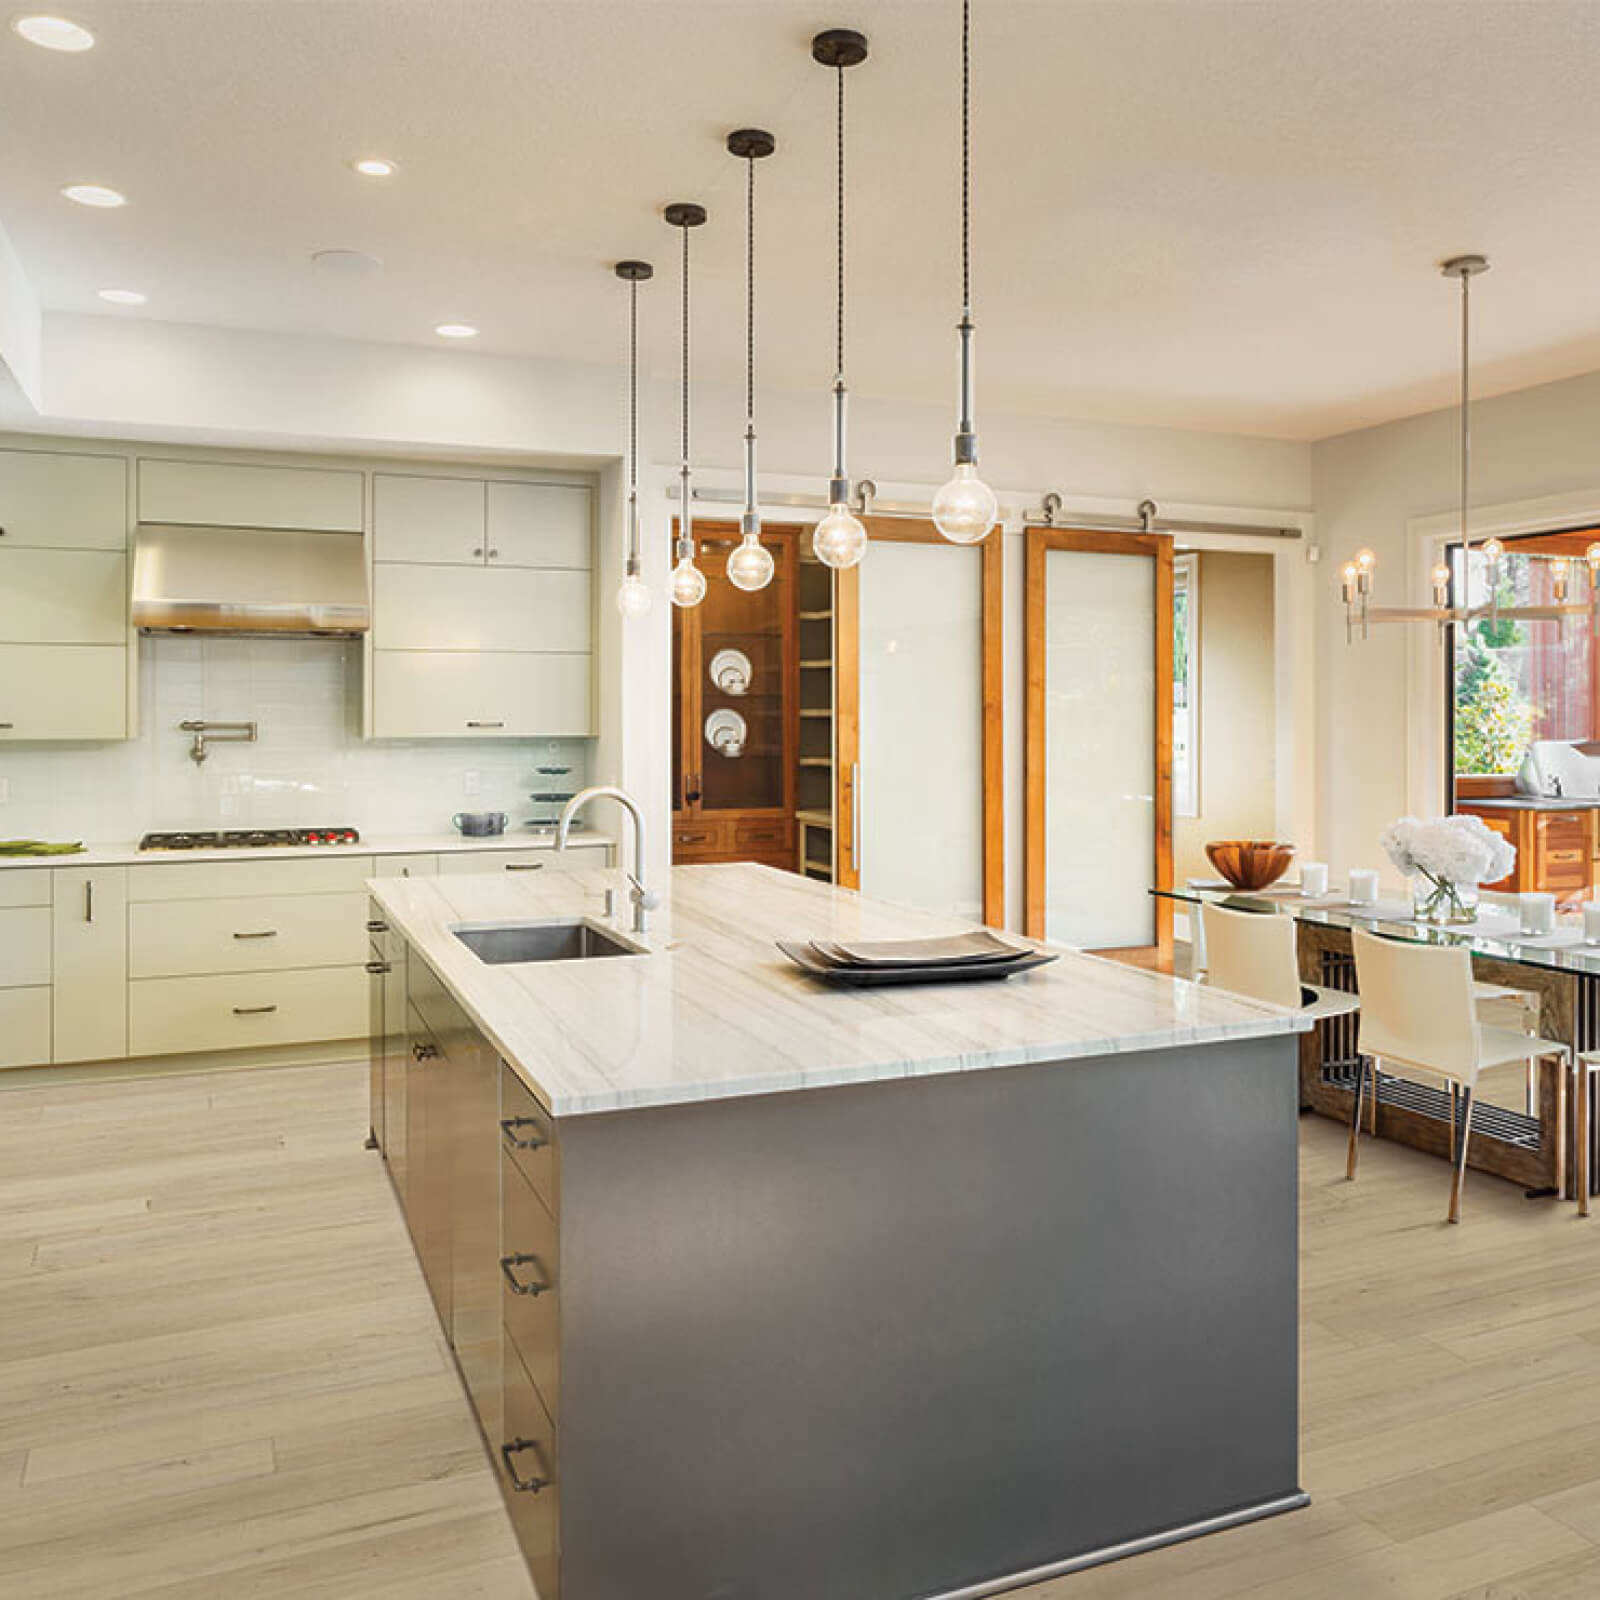 Countertop and cabinets | Kirkland's Flooring